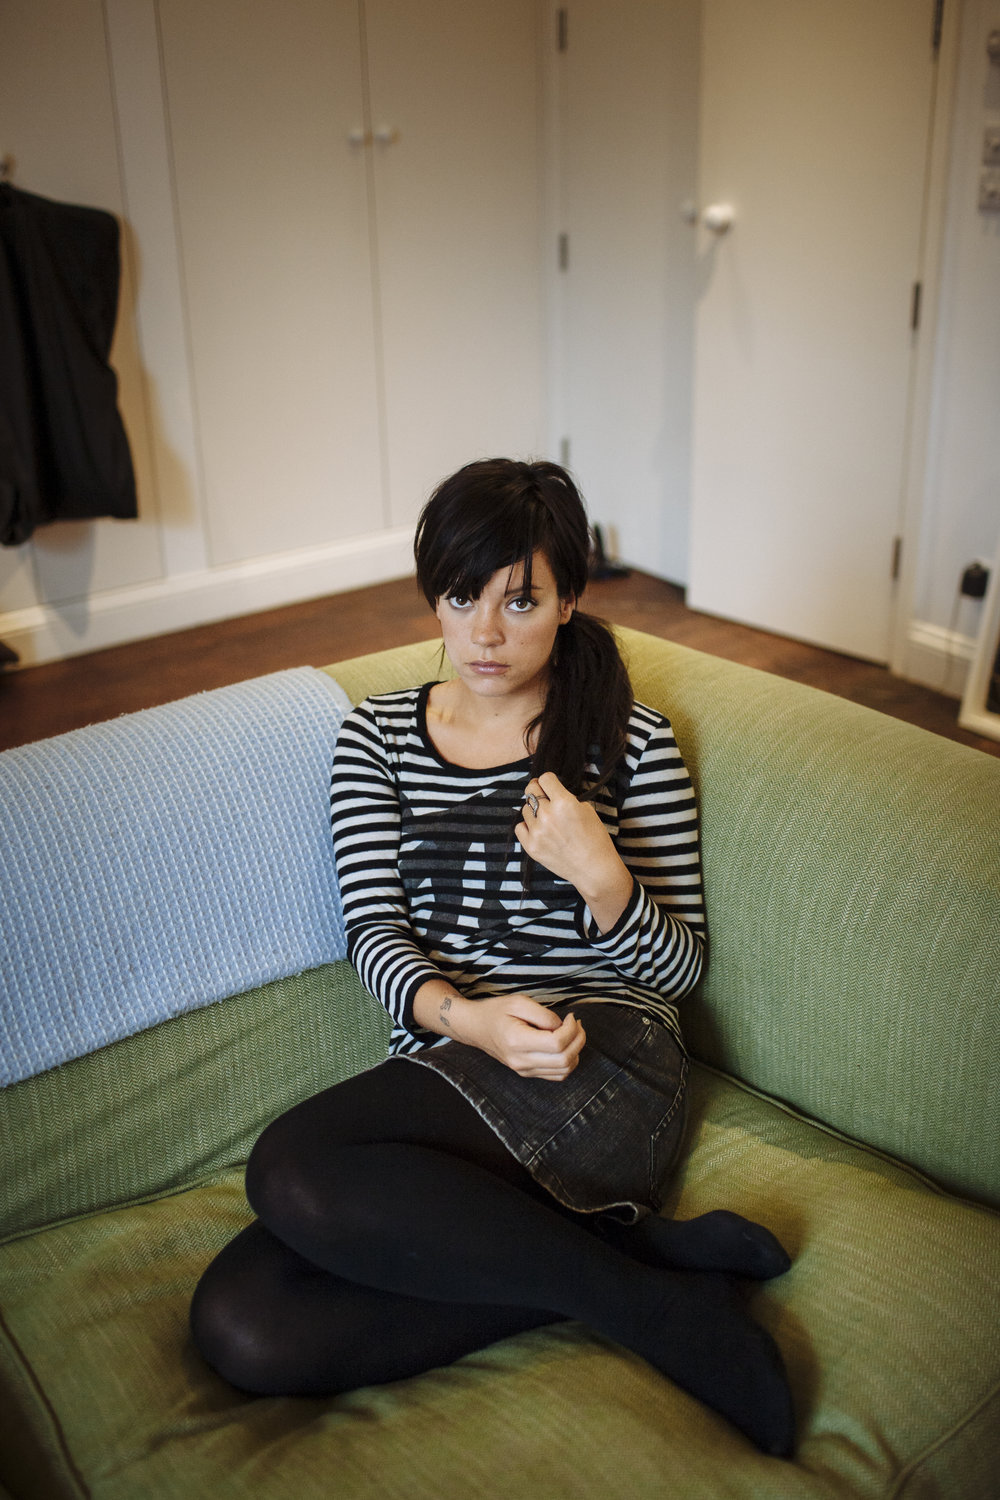 British singer Lily Allen poses for a photograph in her living room at her home in Kilburn, northwest London, Tuesday, Jan. 13, 2009. (David Azia for The New York Times)